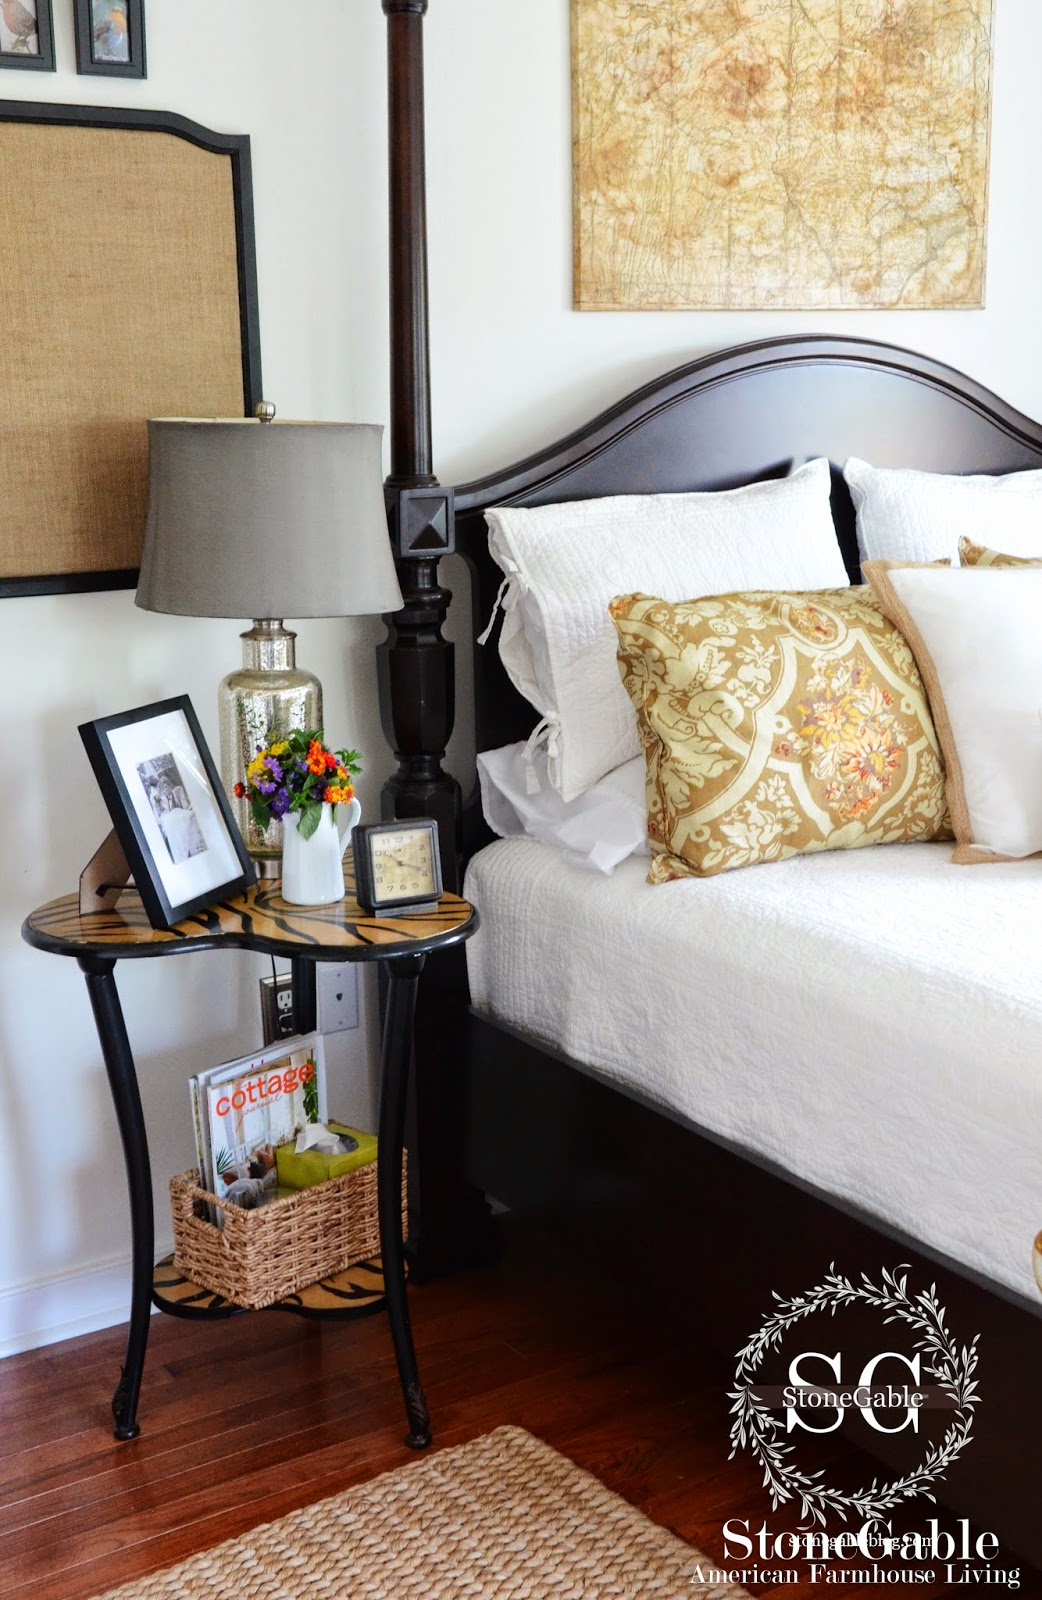 10 ESSENTIALS OF A COZY GUEST ROOM - StoneGable